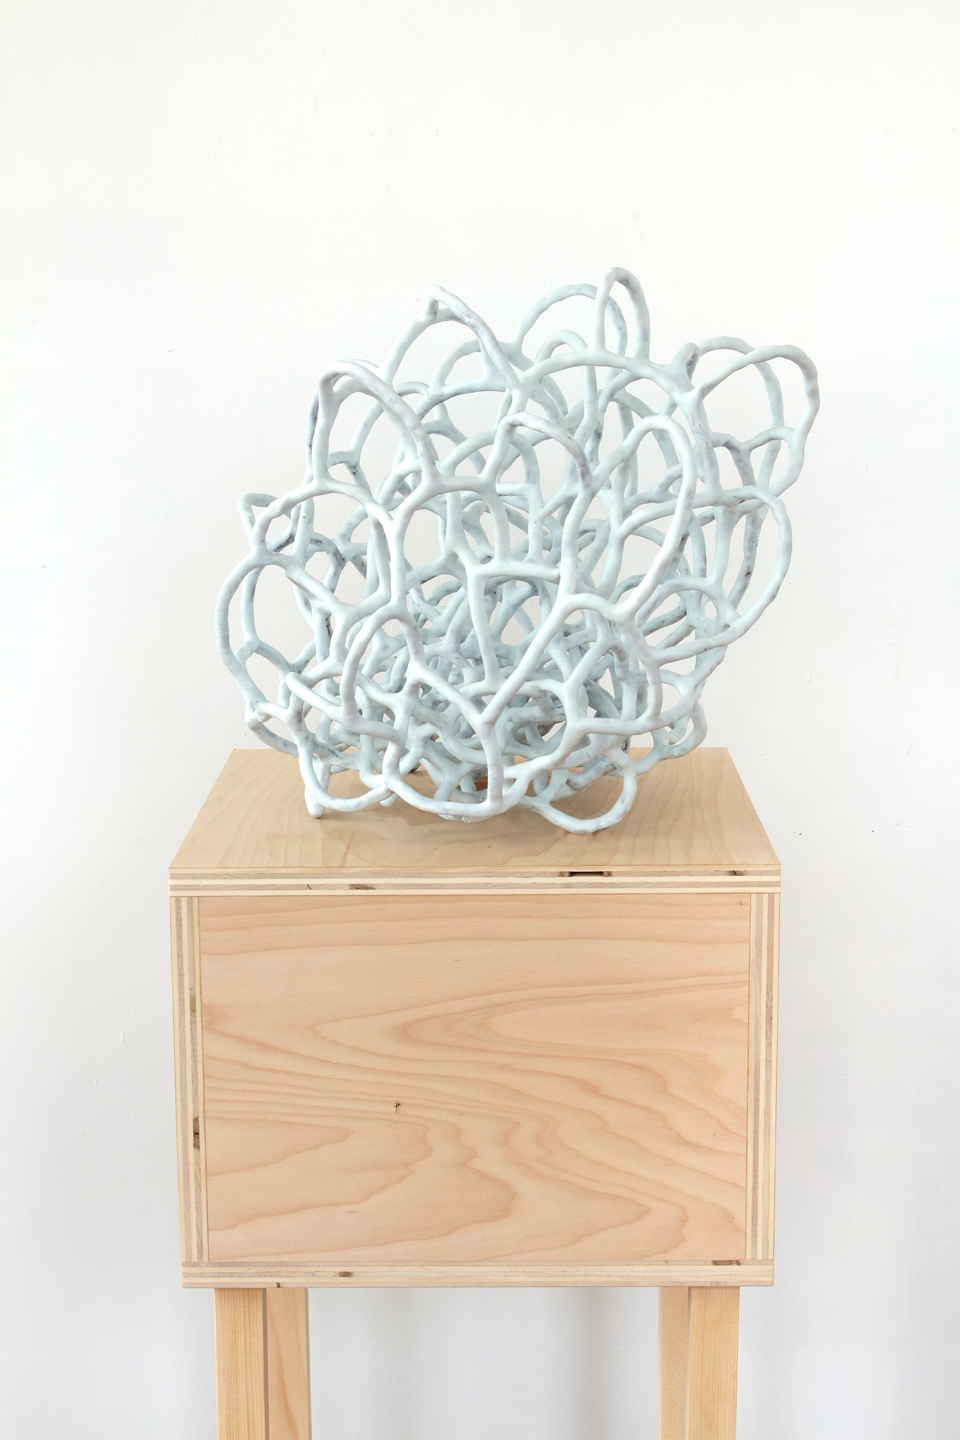 Murmur and crepuscule (Pale Blue Tangle)